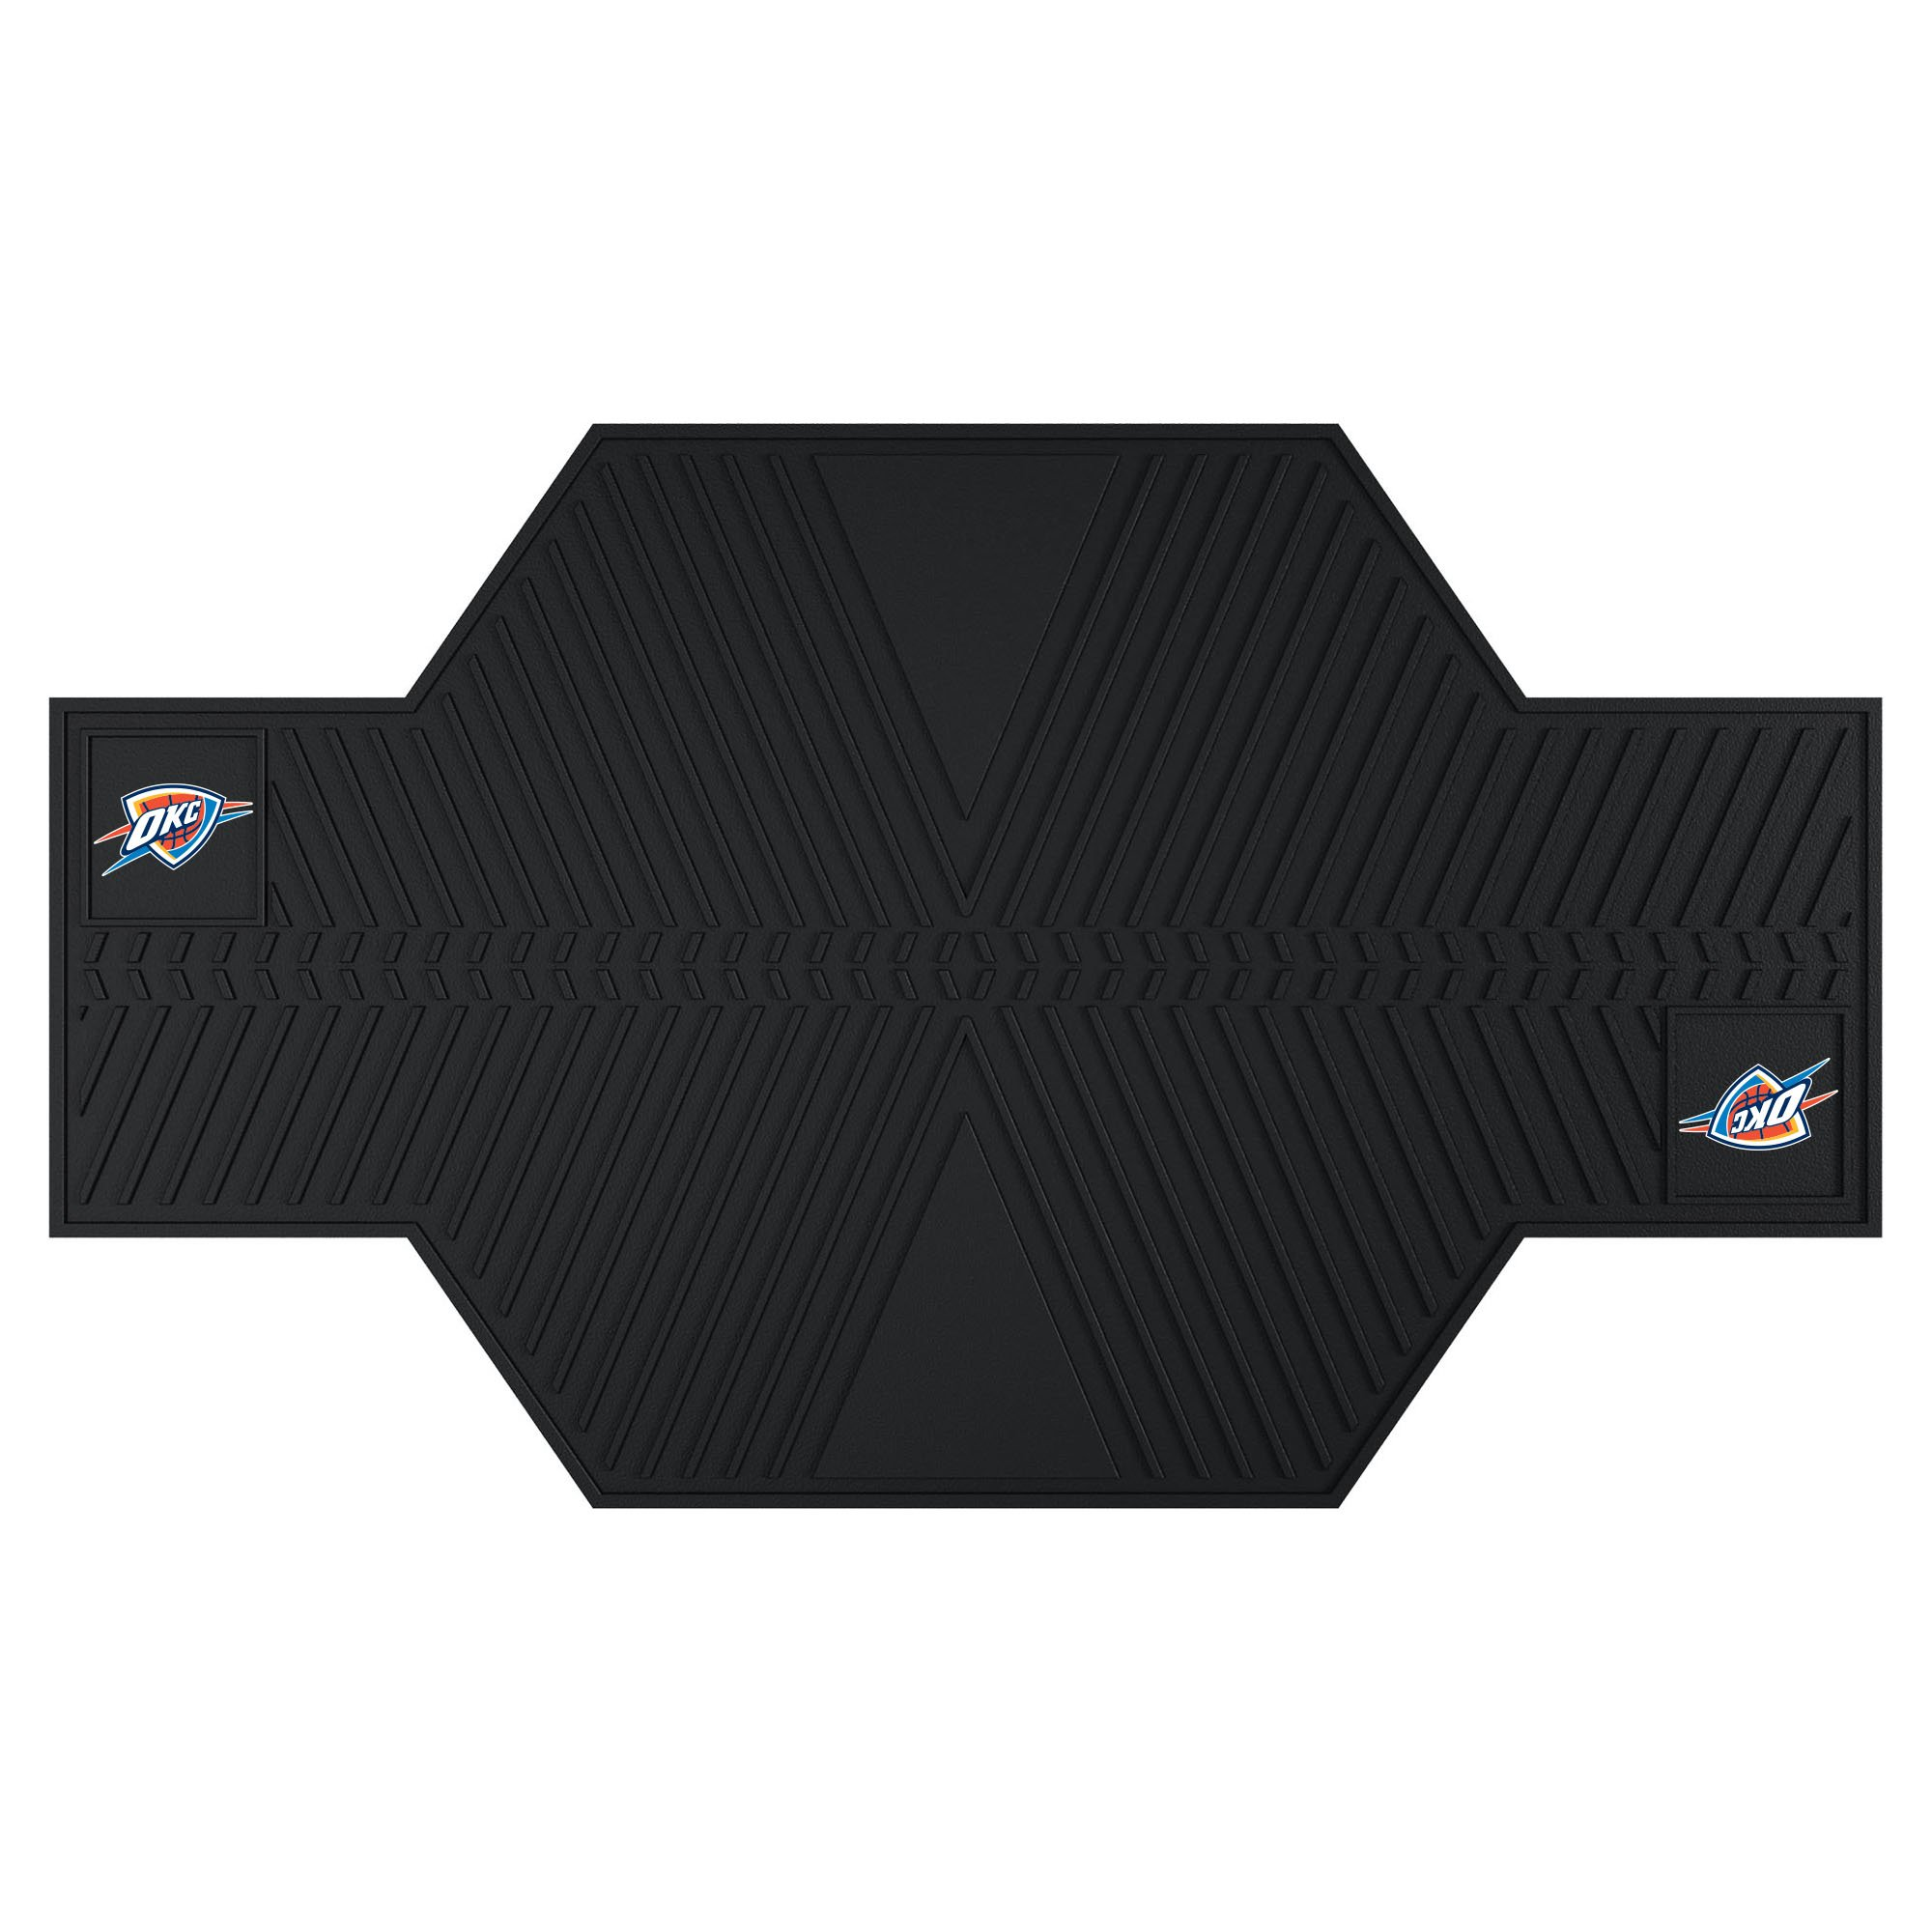 FANMATS 15389 NBA Oklahoma City Thunder Motorcycle Mat